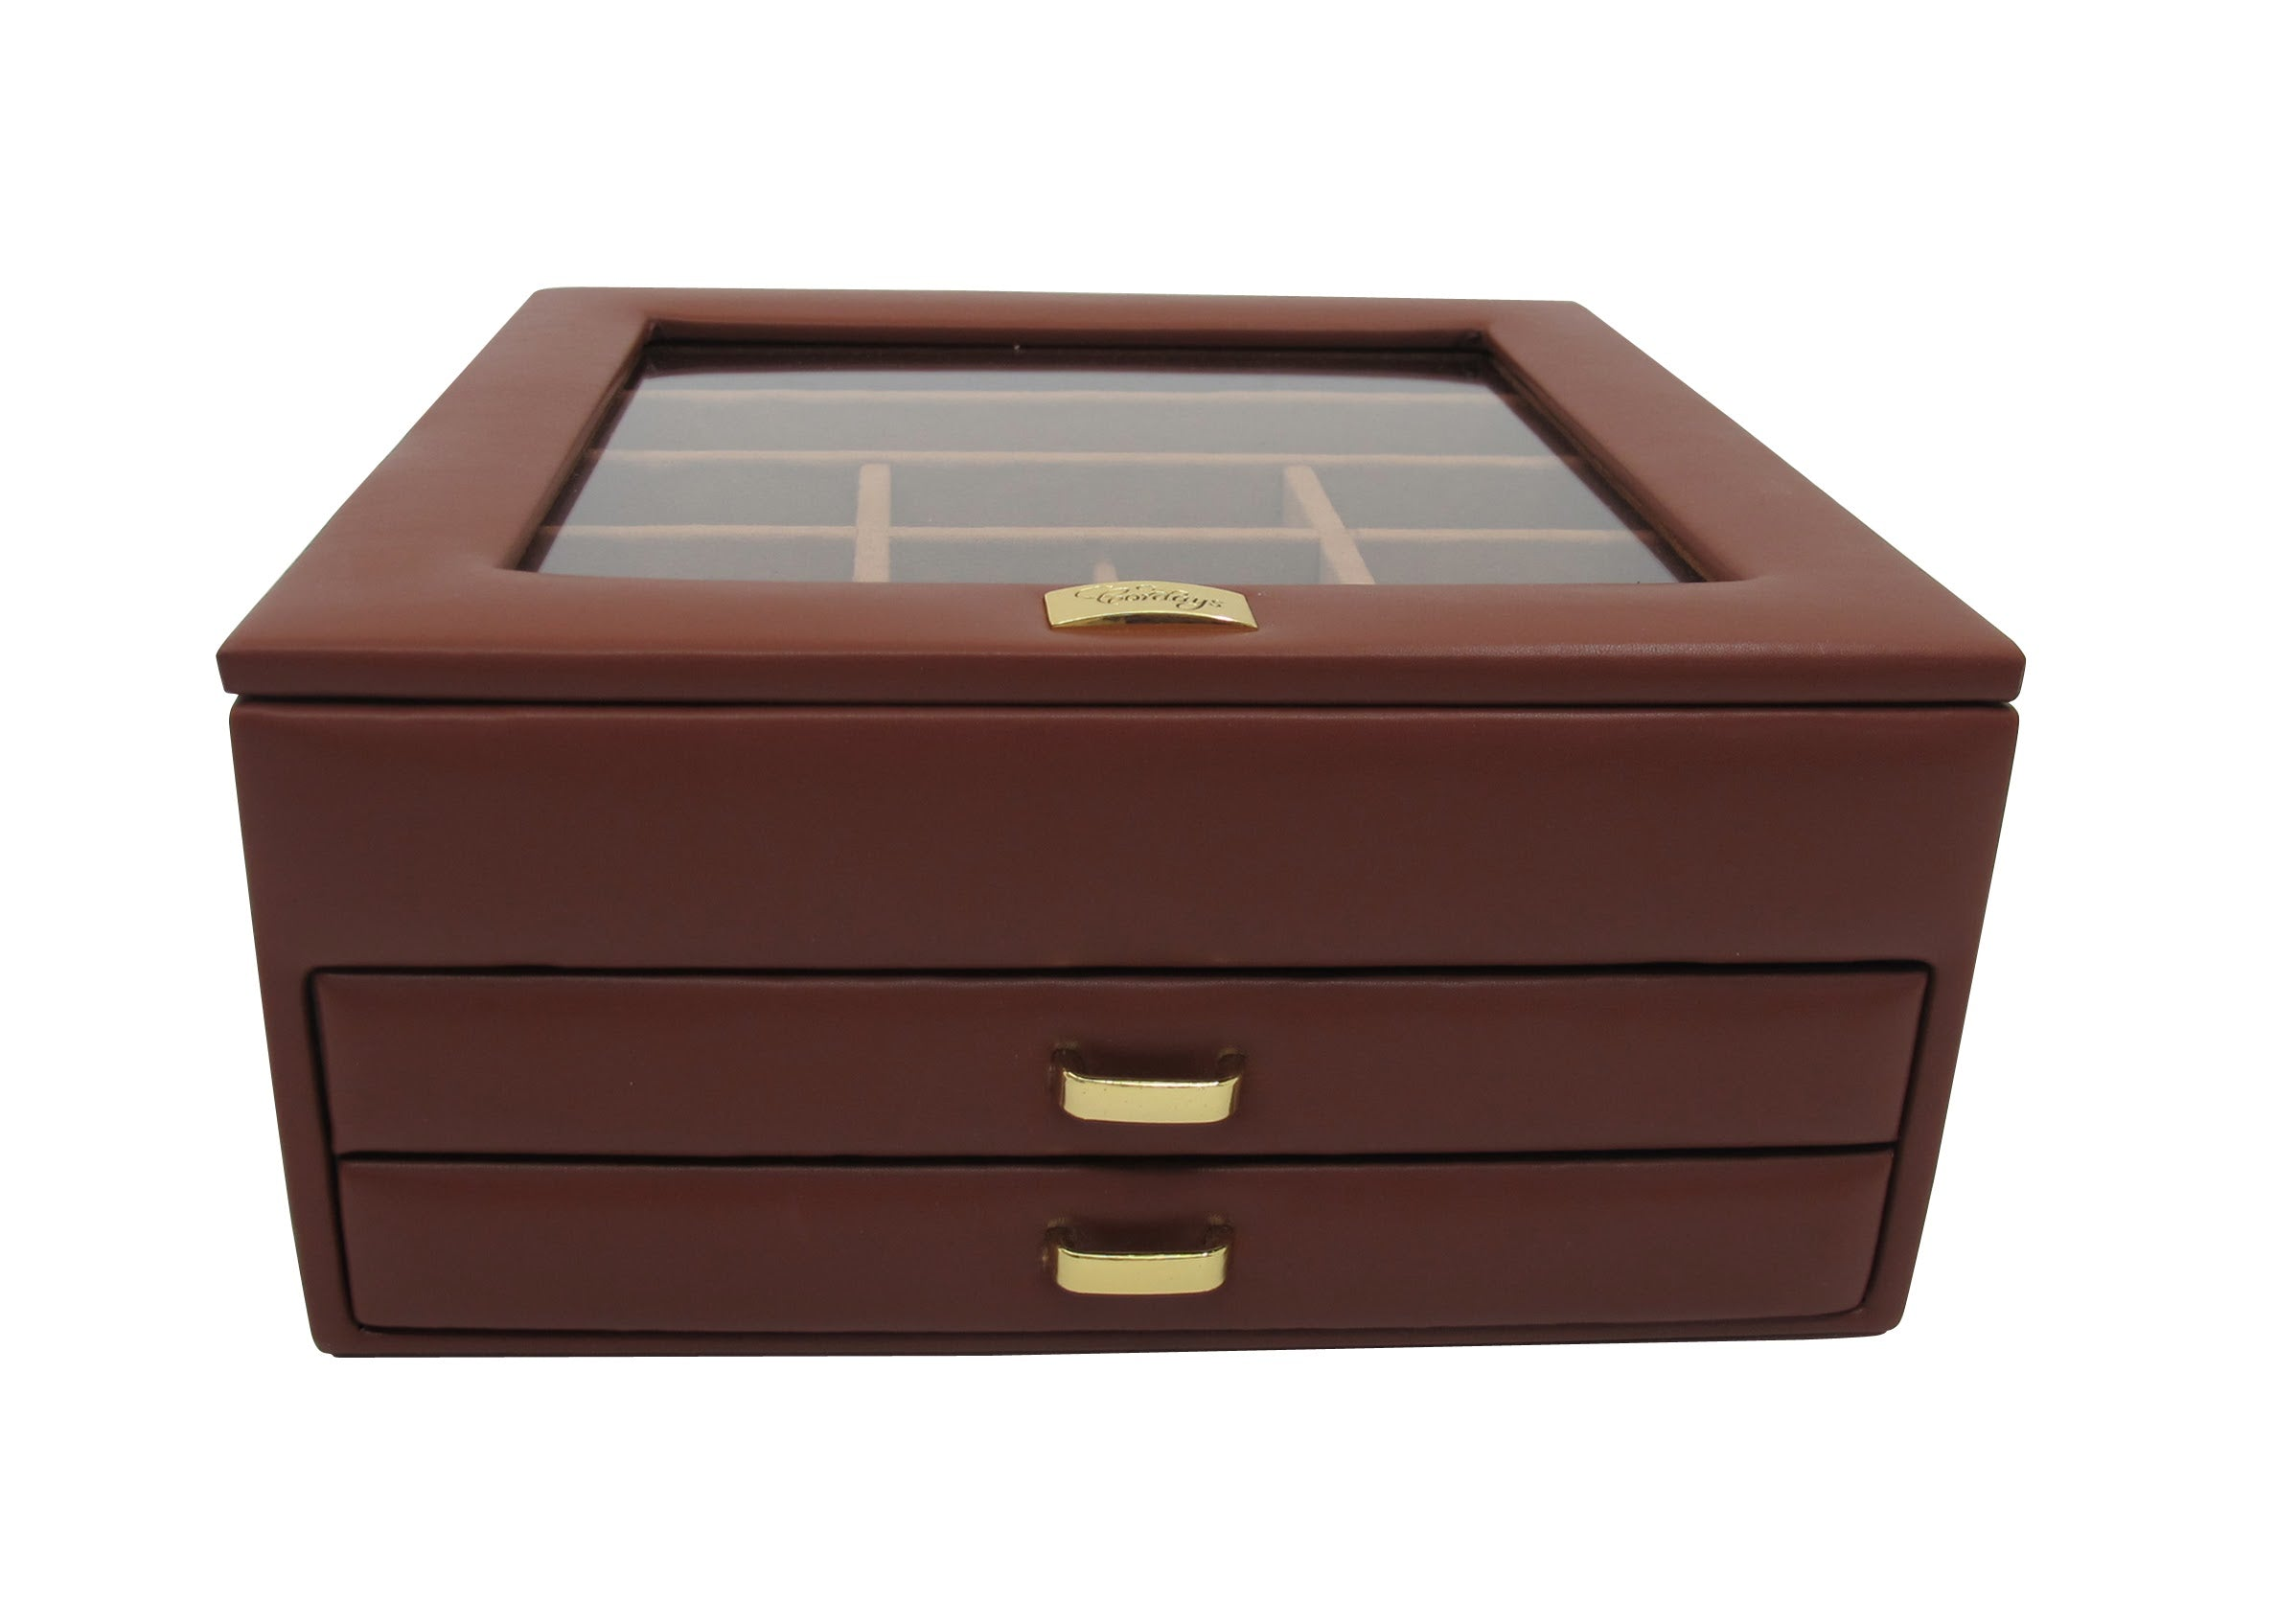 Handcrafted Jewellery Box Premium Quality with 2 Drawers Top Glass Lid